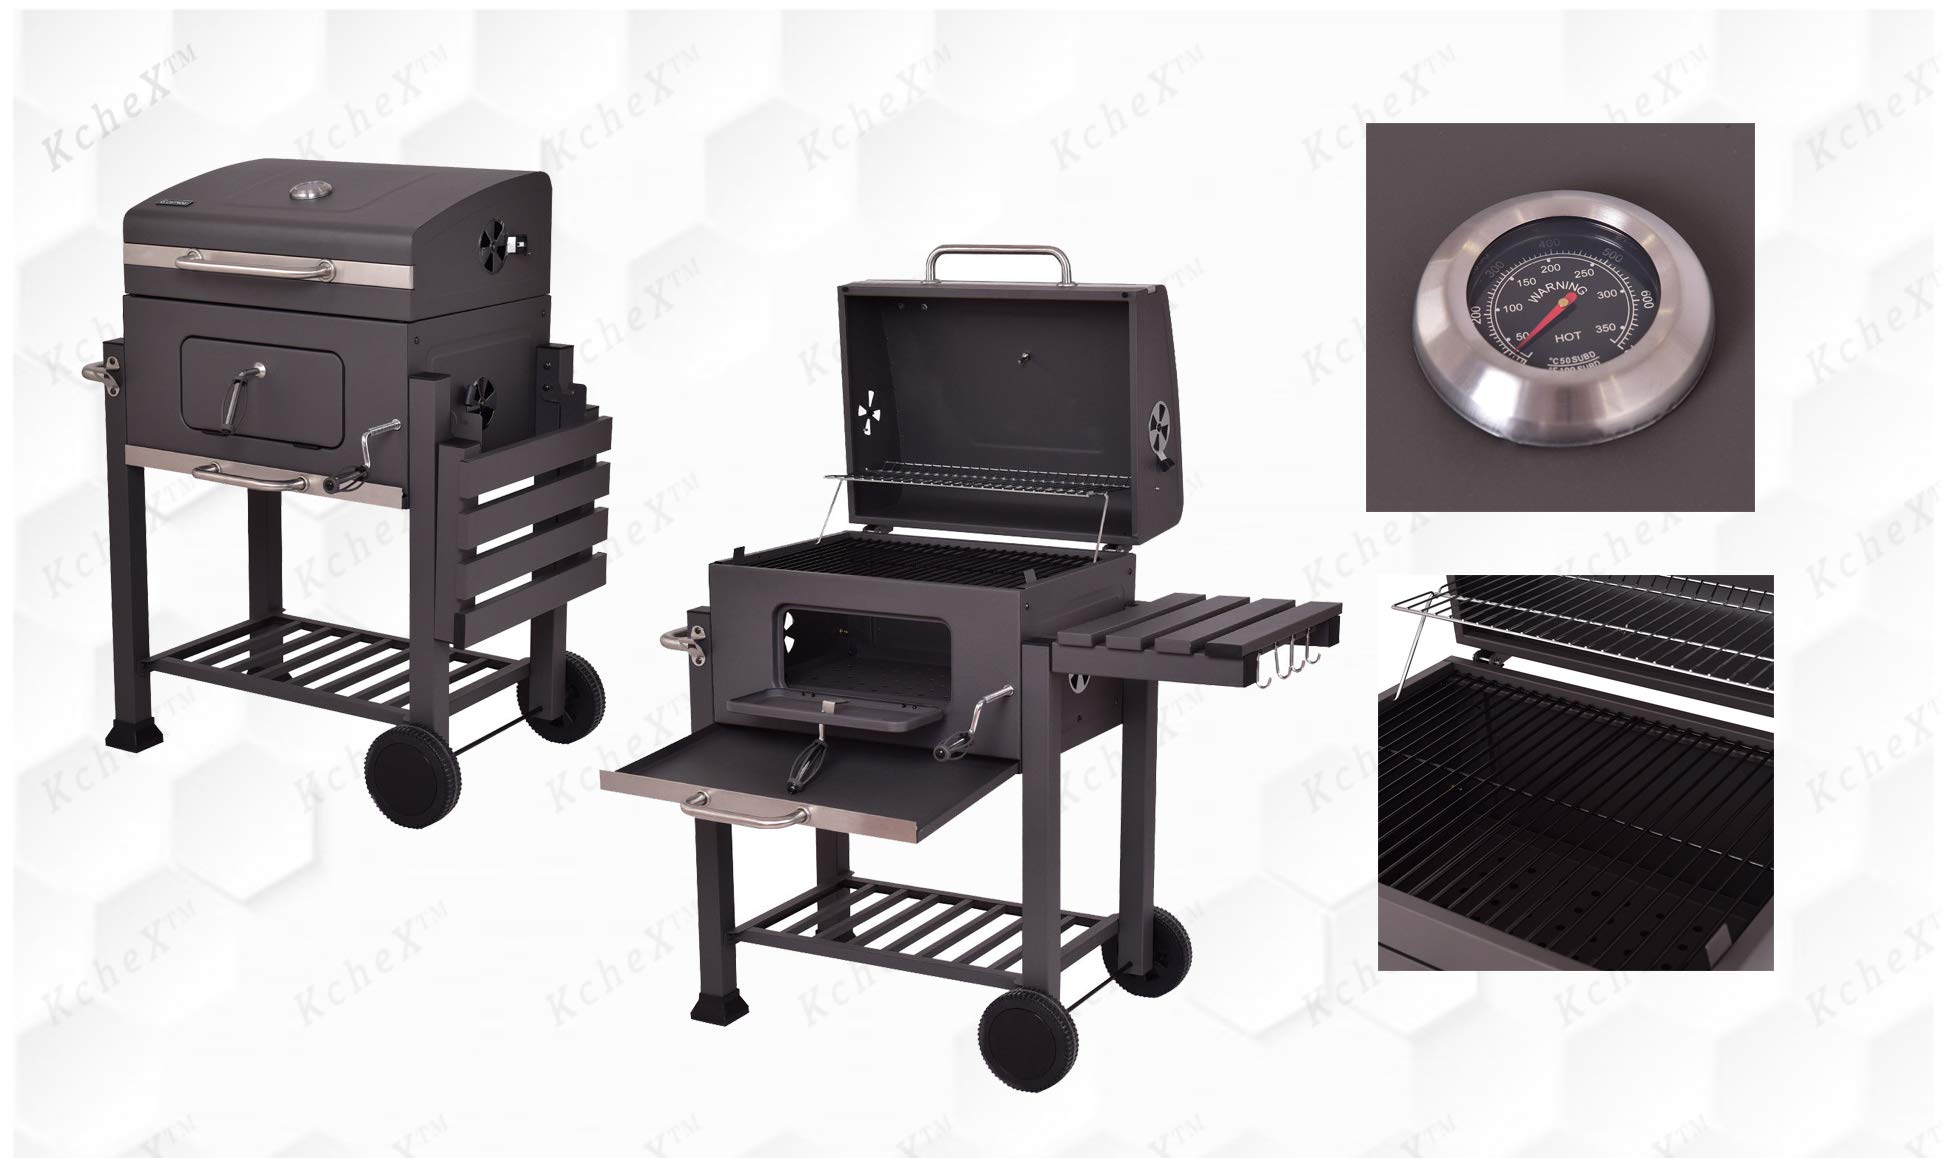 KCHEX__Charcoal Grill Barbecue by KCHEX